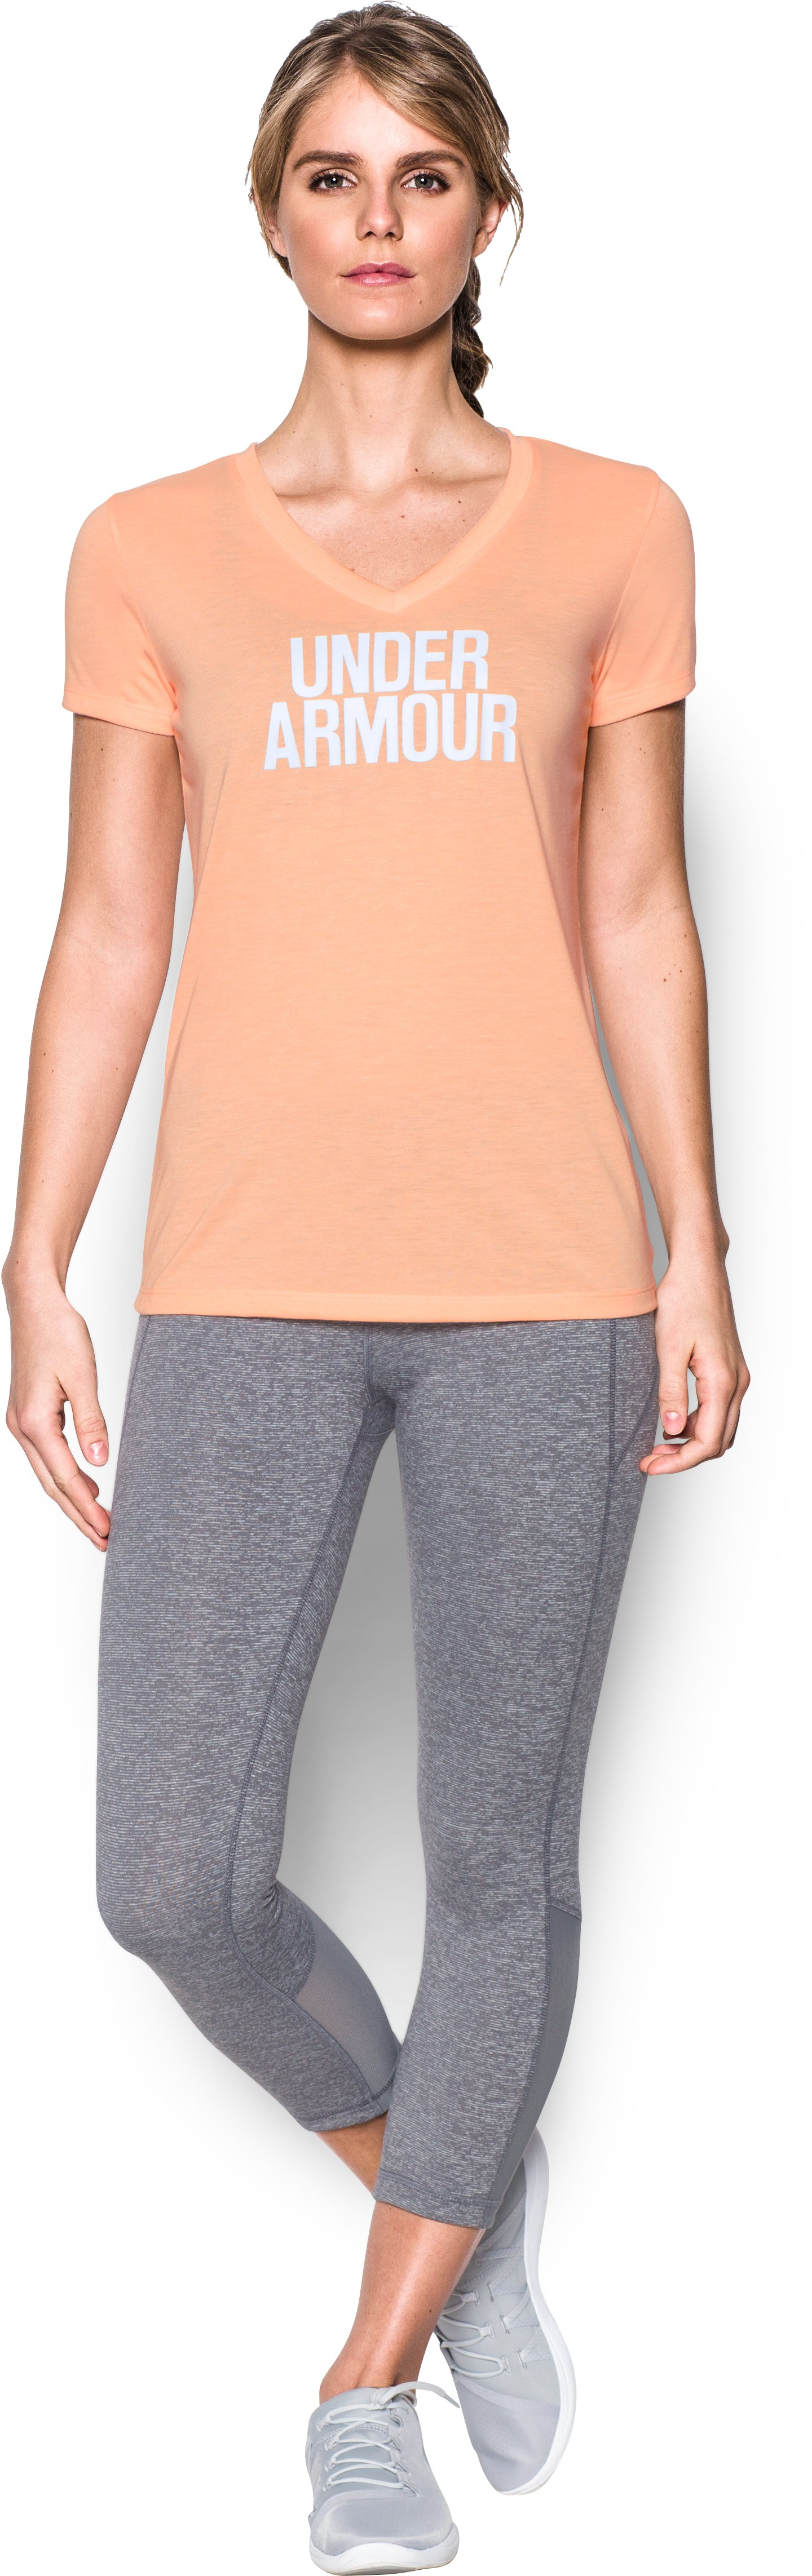 Women's UA Threadborne Train Wordmark V-Neck - Twist, PLAYFUL PEACH